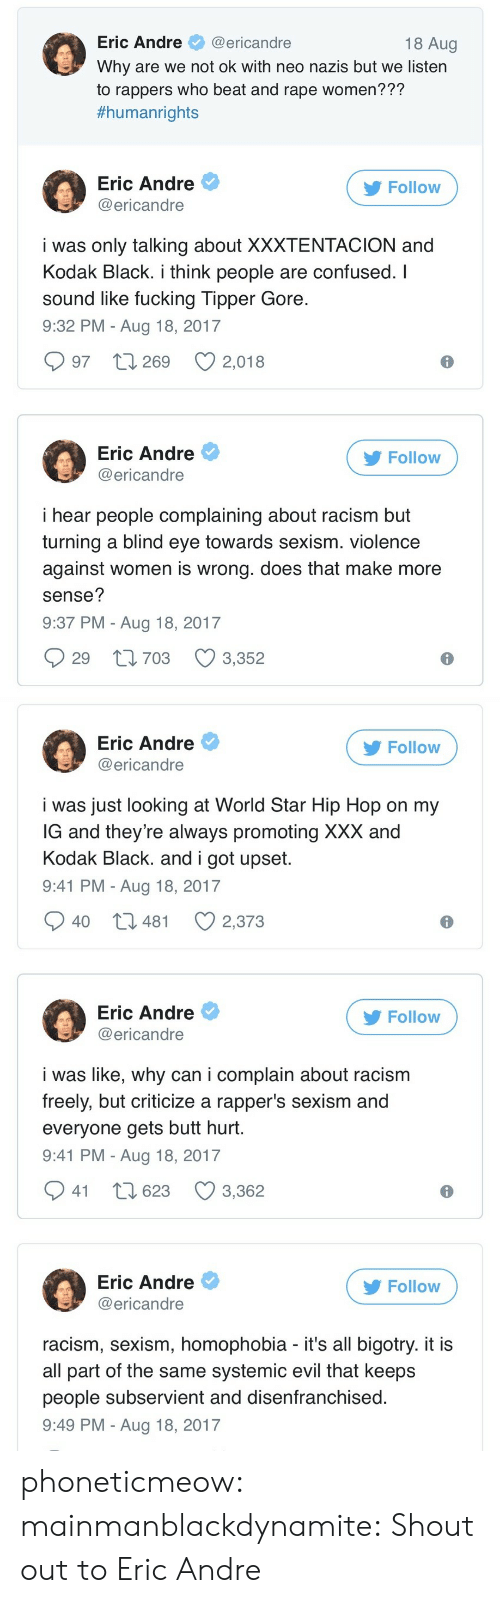 Butt, Confused, and Fucking: Eric Andre@ericandre  Why are we not ok with neo nazis but we listern  to rappers who beat and rape women???  #humanrights  18 Aug  Eric Andre  @ericandre  Follow  i was only talking about XXXTENTACION and  Kodak Black. i think people are confused. I  sound like fucking Tipper Gore  9:32 PM - Aug 18, 2017  997 t 269 2,018  Eric Andre  @ericandre  Follow  i hear people complaining about racism but  turning a blind eye towards sexism. violence  against women is wrong. does that make more  sense?  9:37 PM - Aug 18, 2017  29 t1703 3,352   Eric Andre  @ericandre  Follow  i was just looking at World Star Hip Hop on my  G and they're always promoting XXX and  Kodak Black. and i got upset  9:41 PM - Aug 18, 2017  40 t3 481  2,373  Eric Andre  @ericandre  Follow  i was like, why can i complain about racism  freely, but criticize a rapper's sexism and  everyone gets butt hurt  9:41 PM - Aug 18, 2017  941 t 623 3,362  Eric Andre  @ericandre  Follow  racism, sexism, homophobia - it's all bigotry. it i:s  all part of the same systemic evil that keeps  people subservient and disenfranchised  9:49 PM - Aug 18, 2017 phoneticmeow:  mainmanblackdynamite: Shout out to Eric Andre